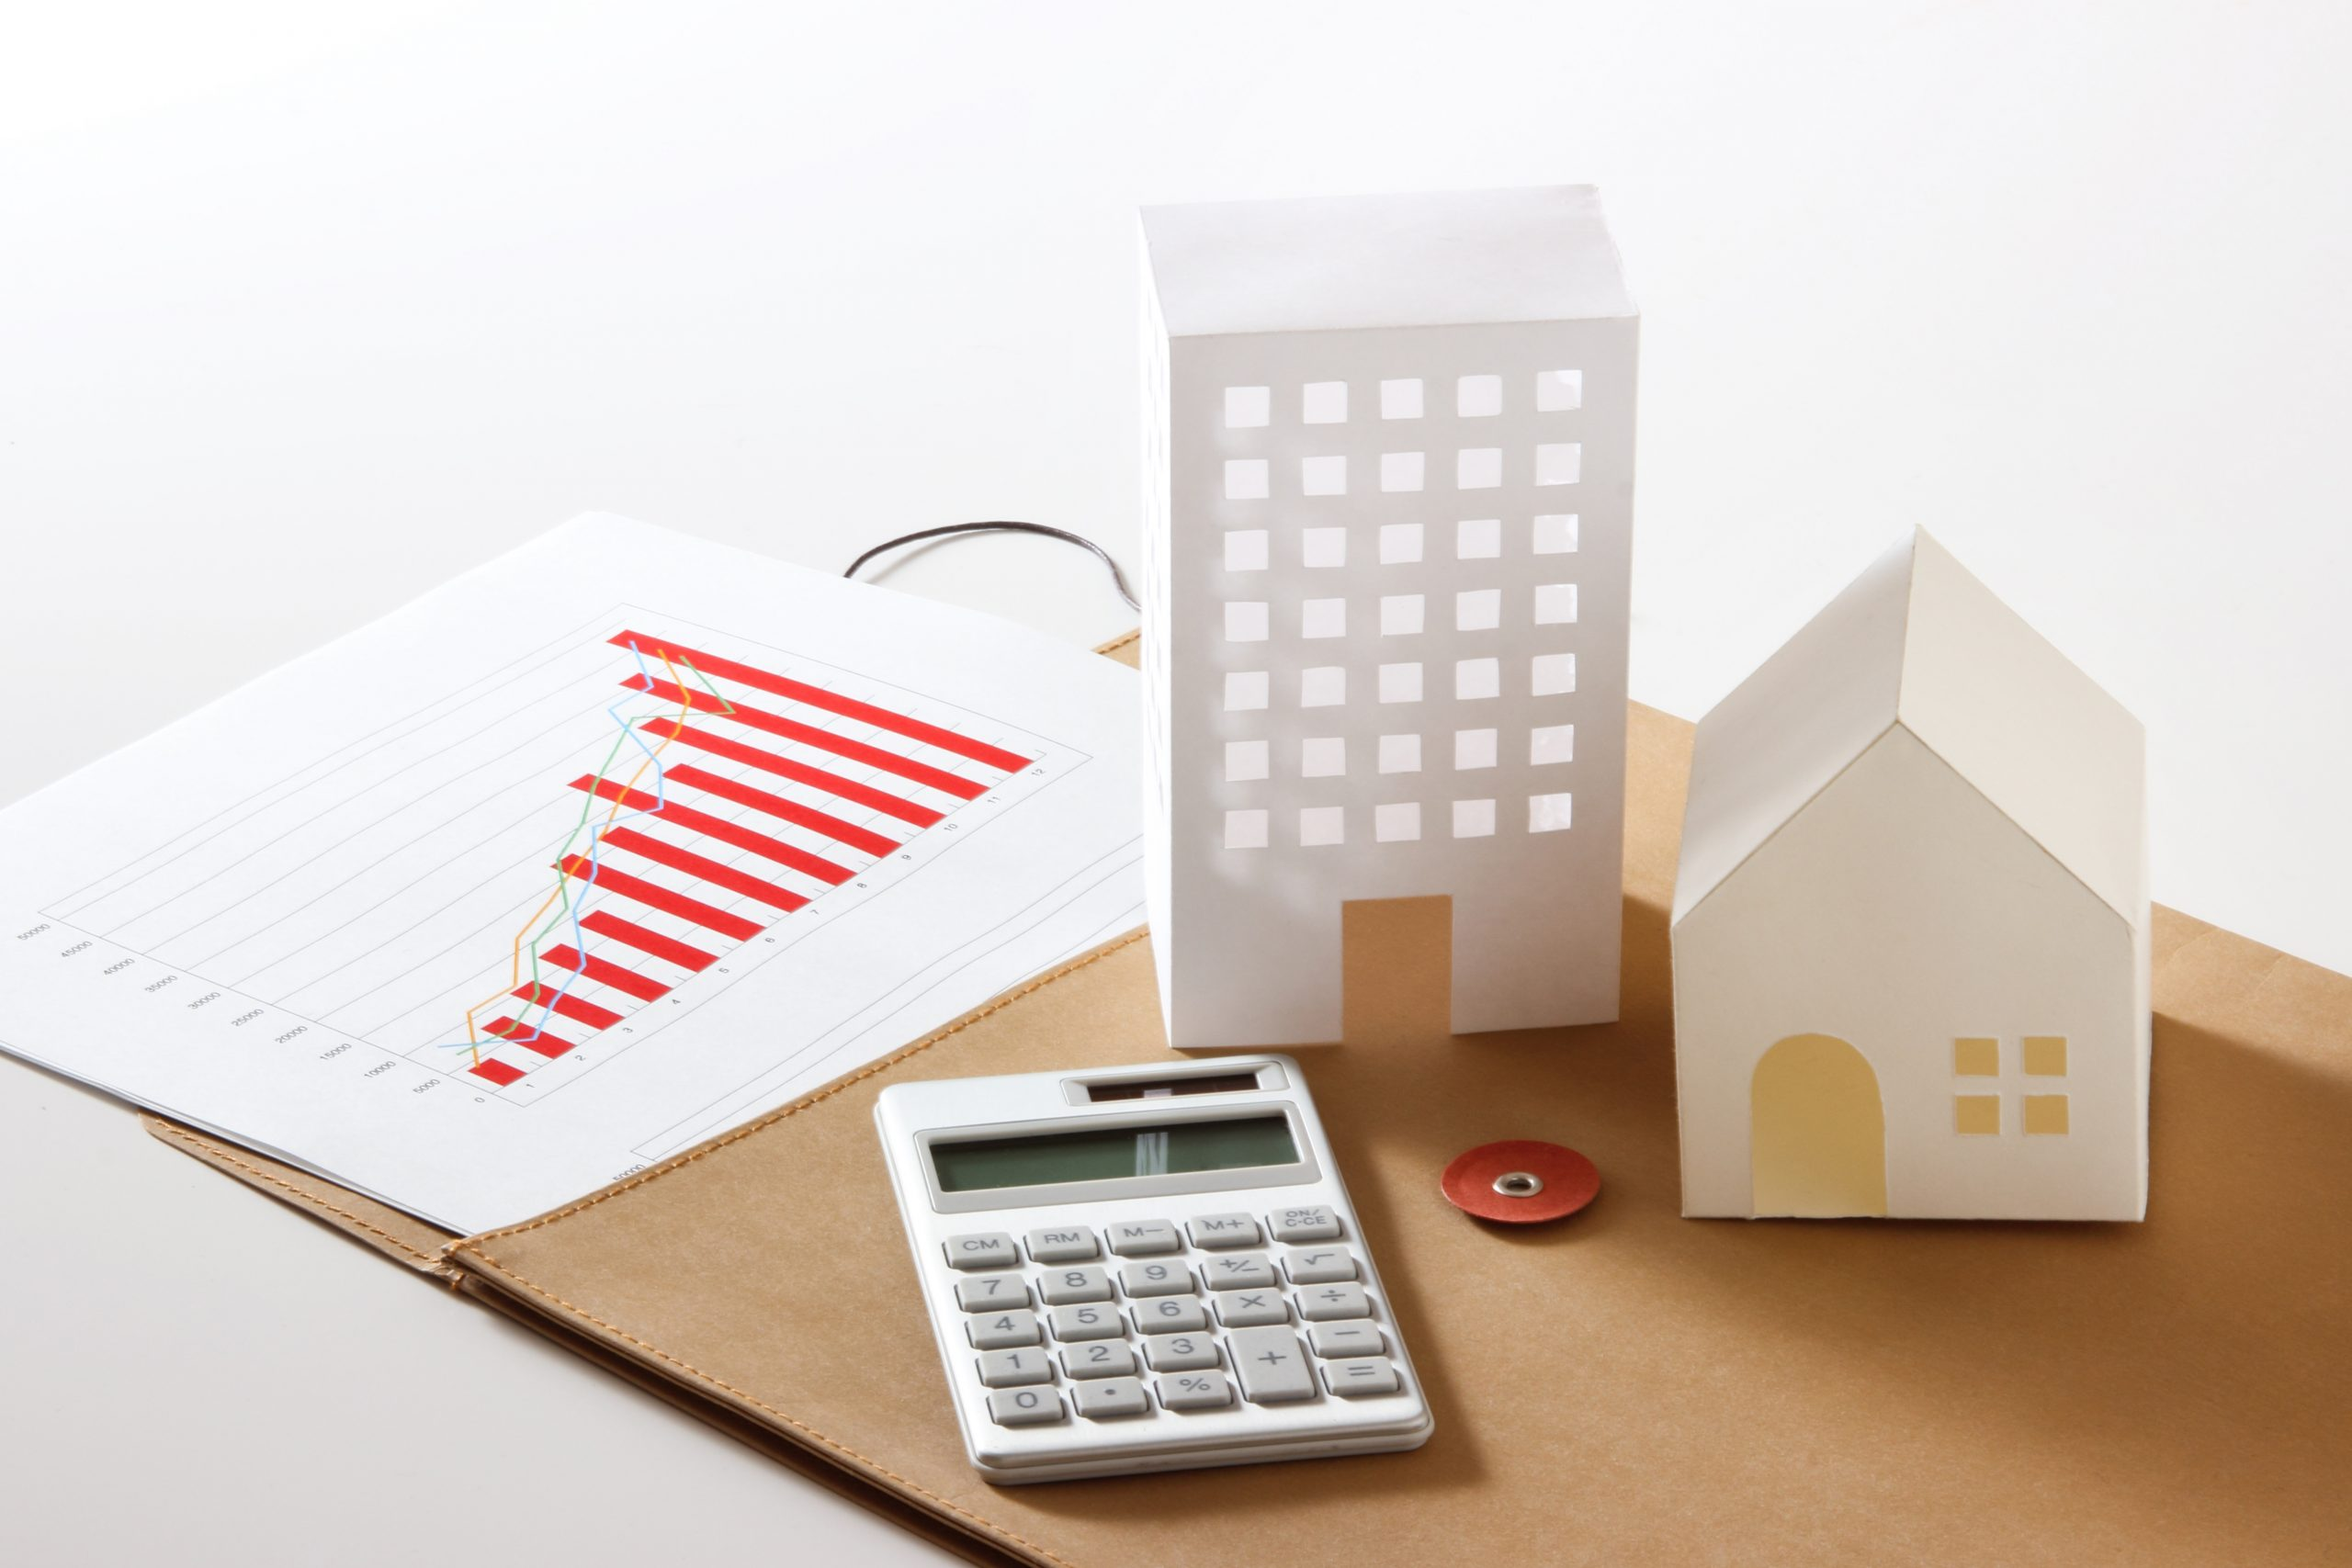 Should I Invest In Property or The Stock Market?